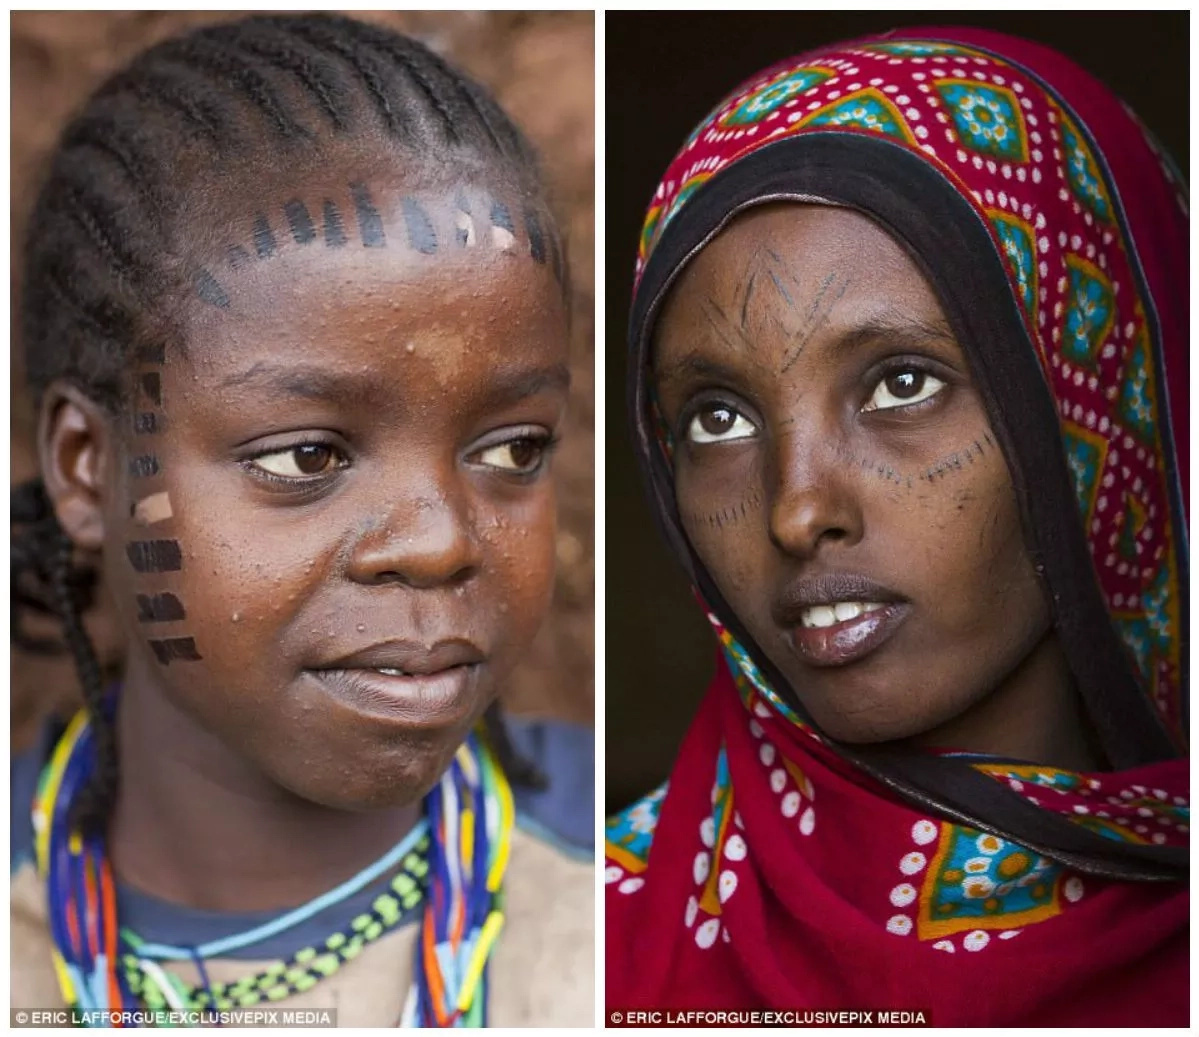 See girls as young as 12 cut with razors to make them beautiful (photos)